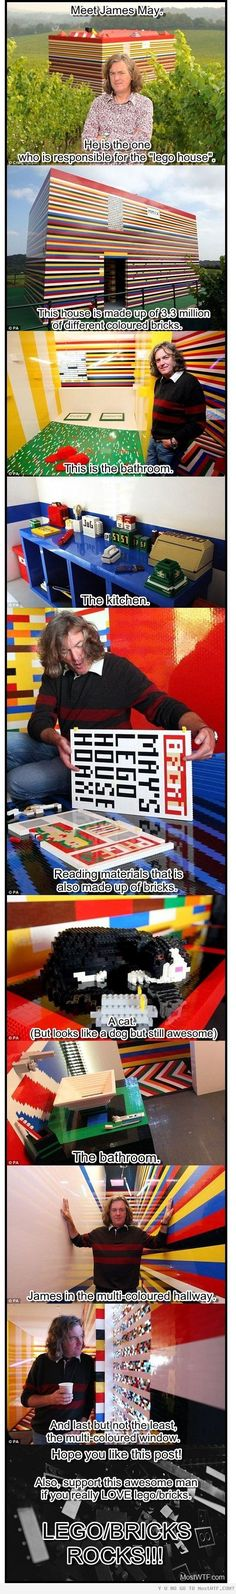 Lego House - Built by James May (of Top Gear fame) this real-life Lego house is both a masterpiece and May's dream come to life. May came up with the idea for a Lego house after a conversation with friends at the pub. They were talking about what they would have built with Lego as kids, if they had had enough bricks, simply because your imagination is generally bigger than the resource available!